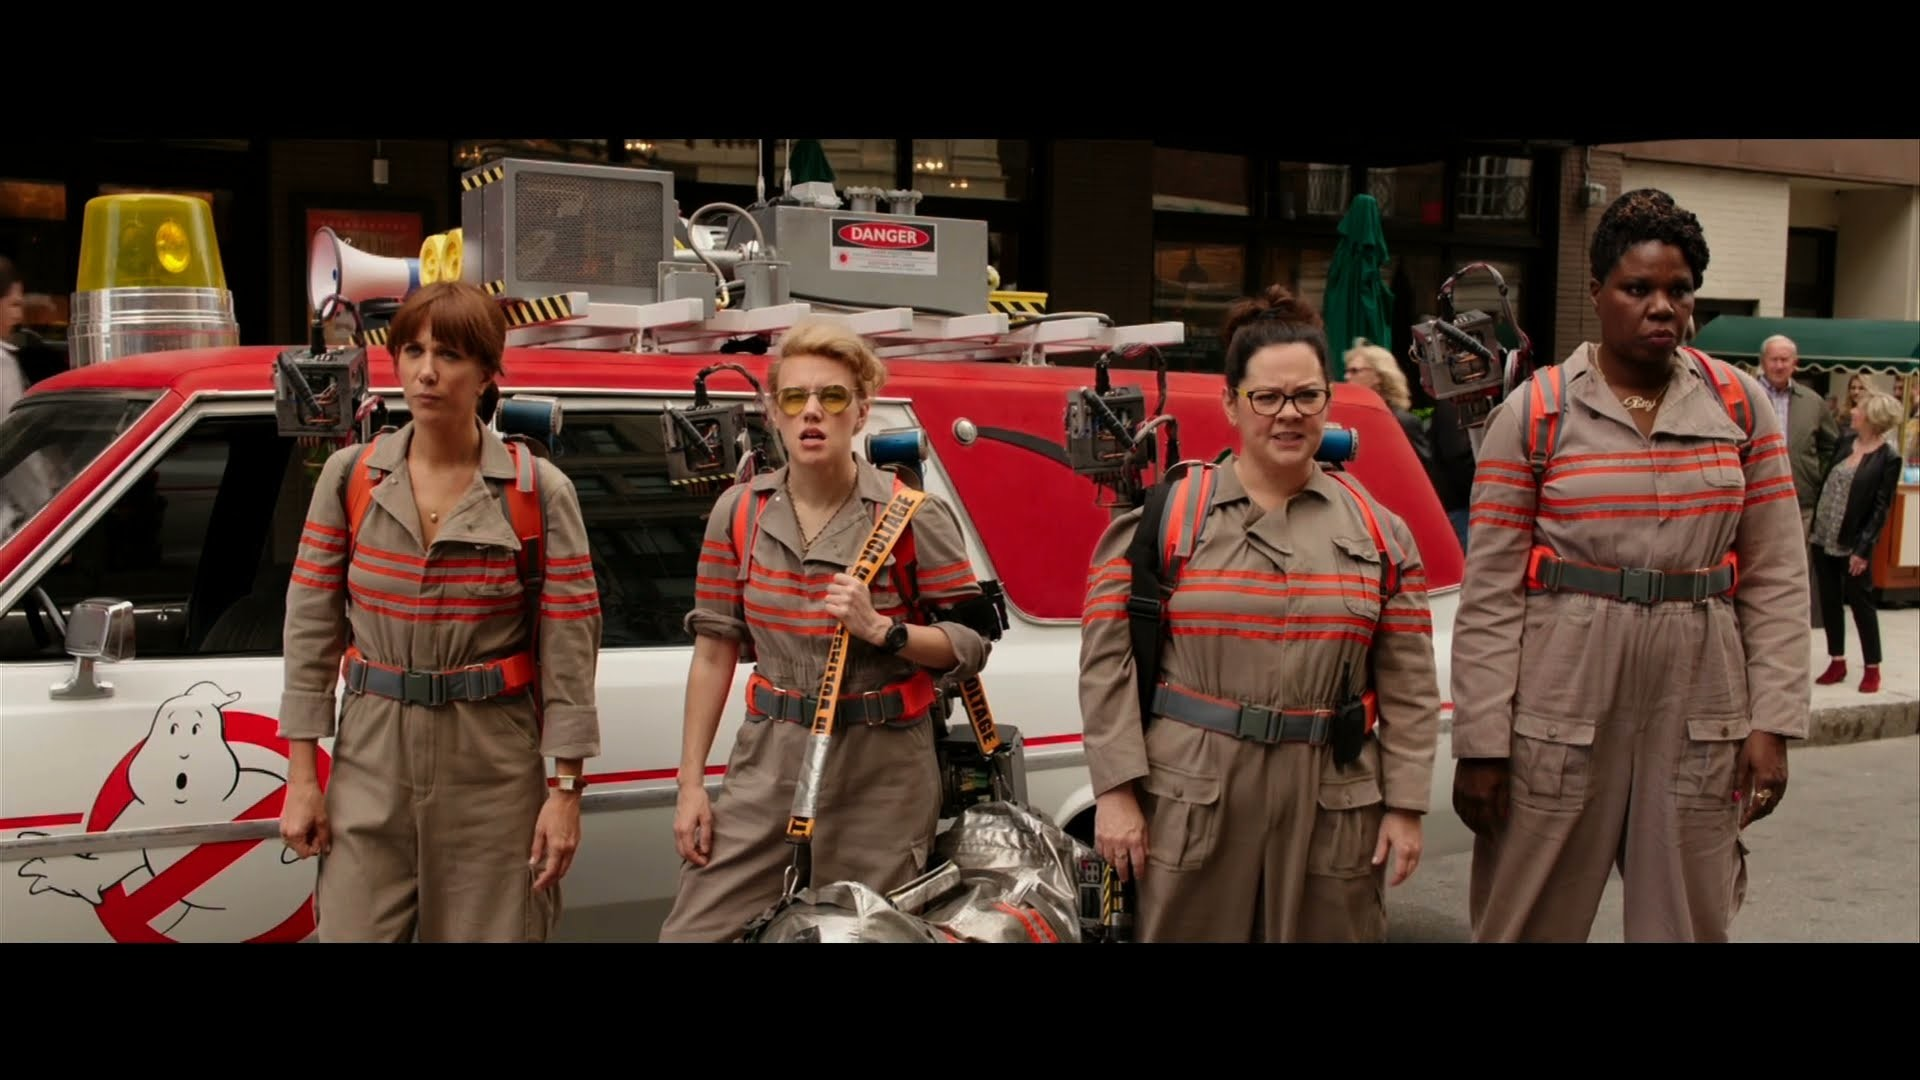 1920x1080 'Ghostbusters' Trailer - YouTube